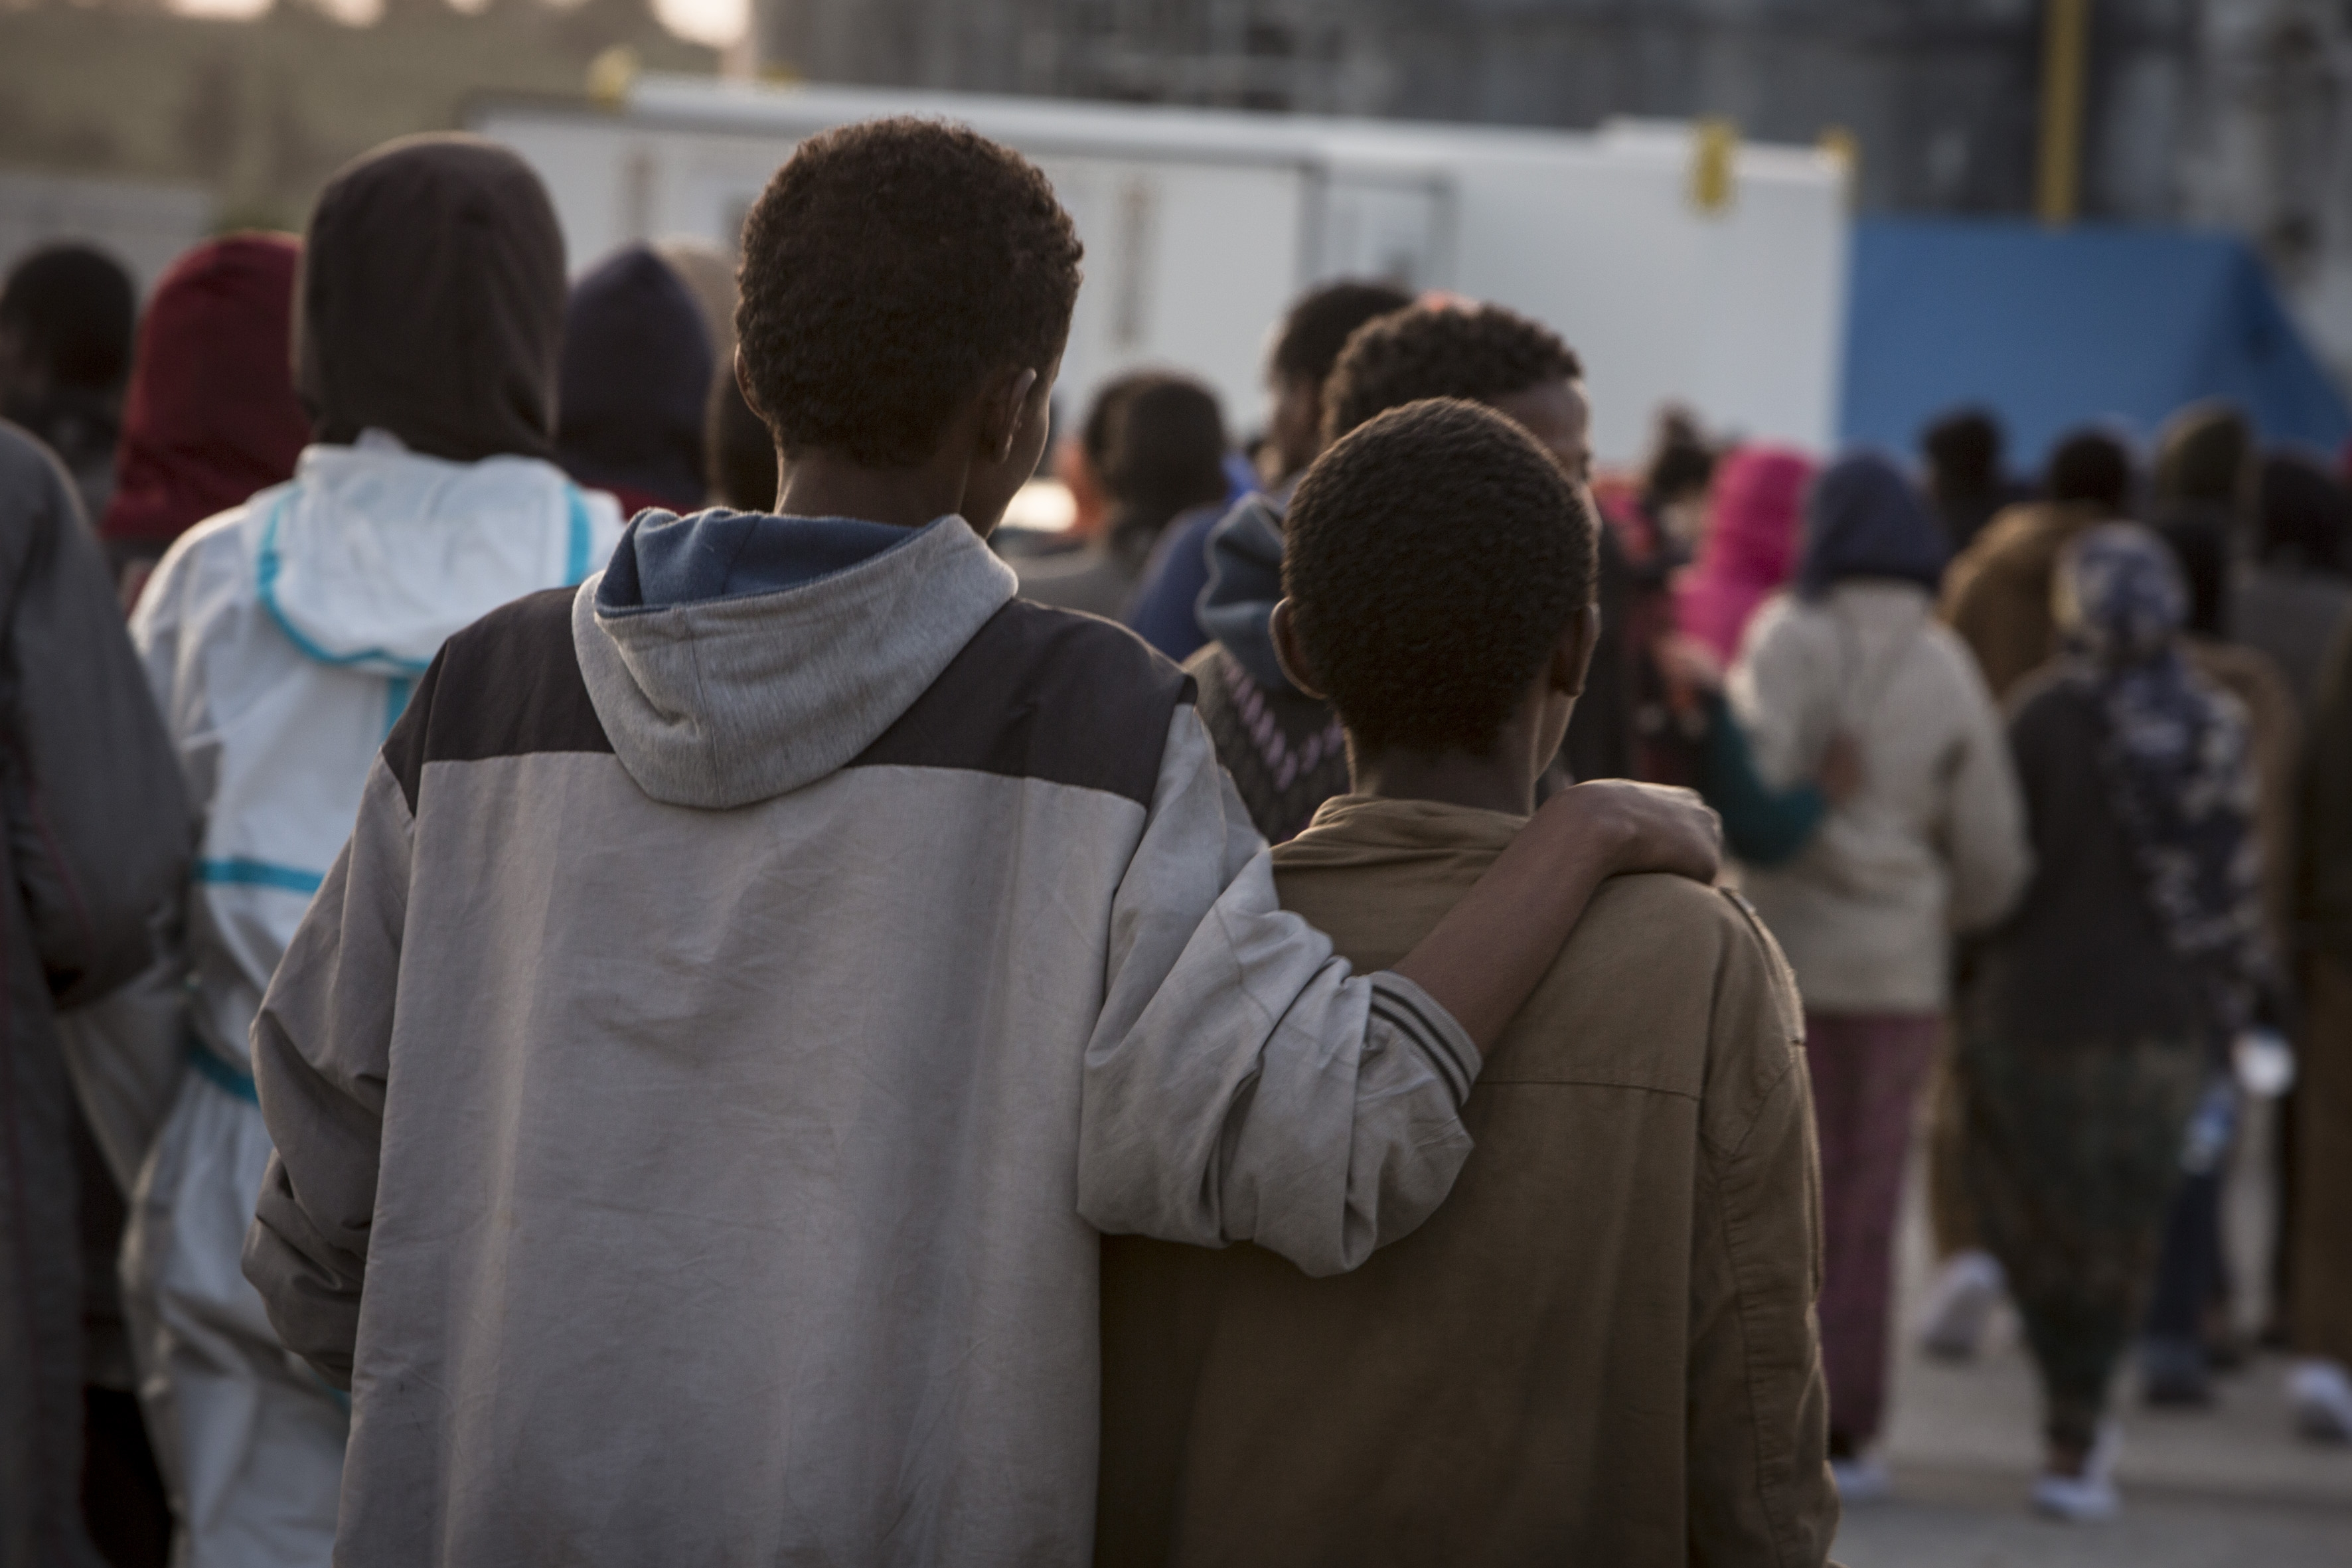 Migrants arrive at the Italian port of Augusta in Sicily. They are greeted by Save the Children staff whilst awaiting processing by Italian authorities.